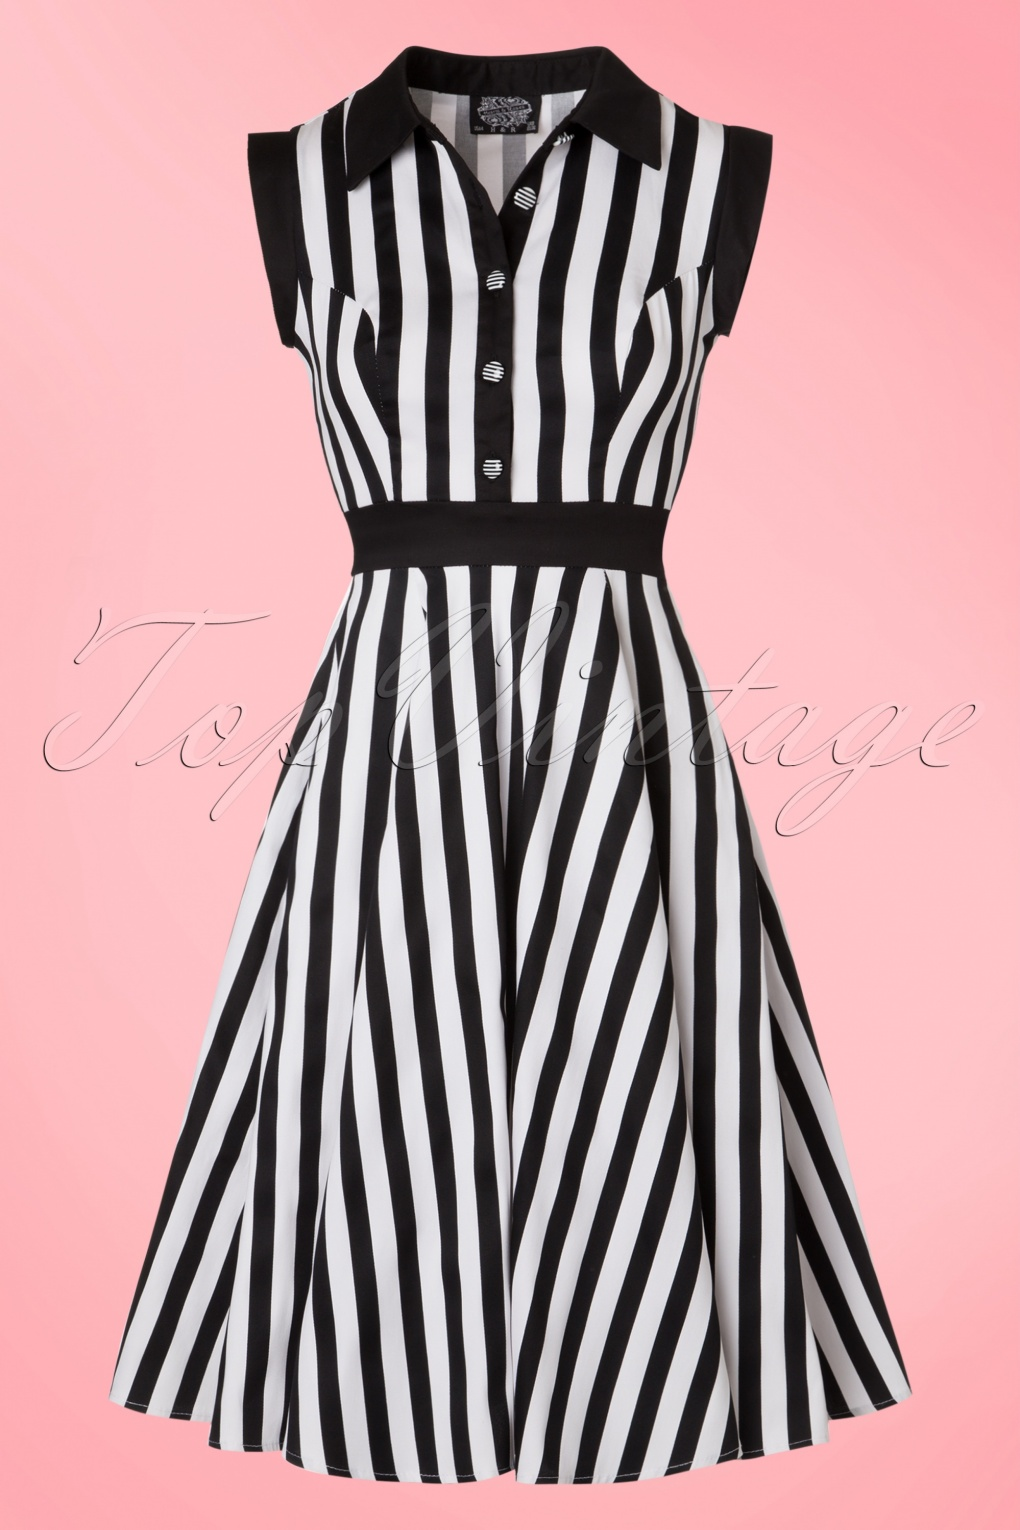 1960s Style Dresses- Retro Inspired Fashion 50s Debra Stripes Swing Dress in Black and White £46.61 AT vintagedancer.com